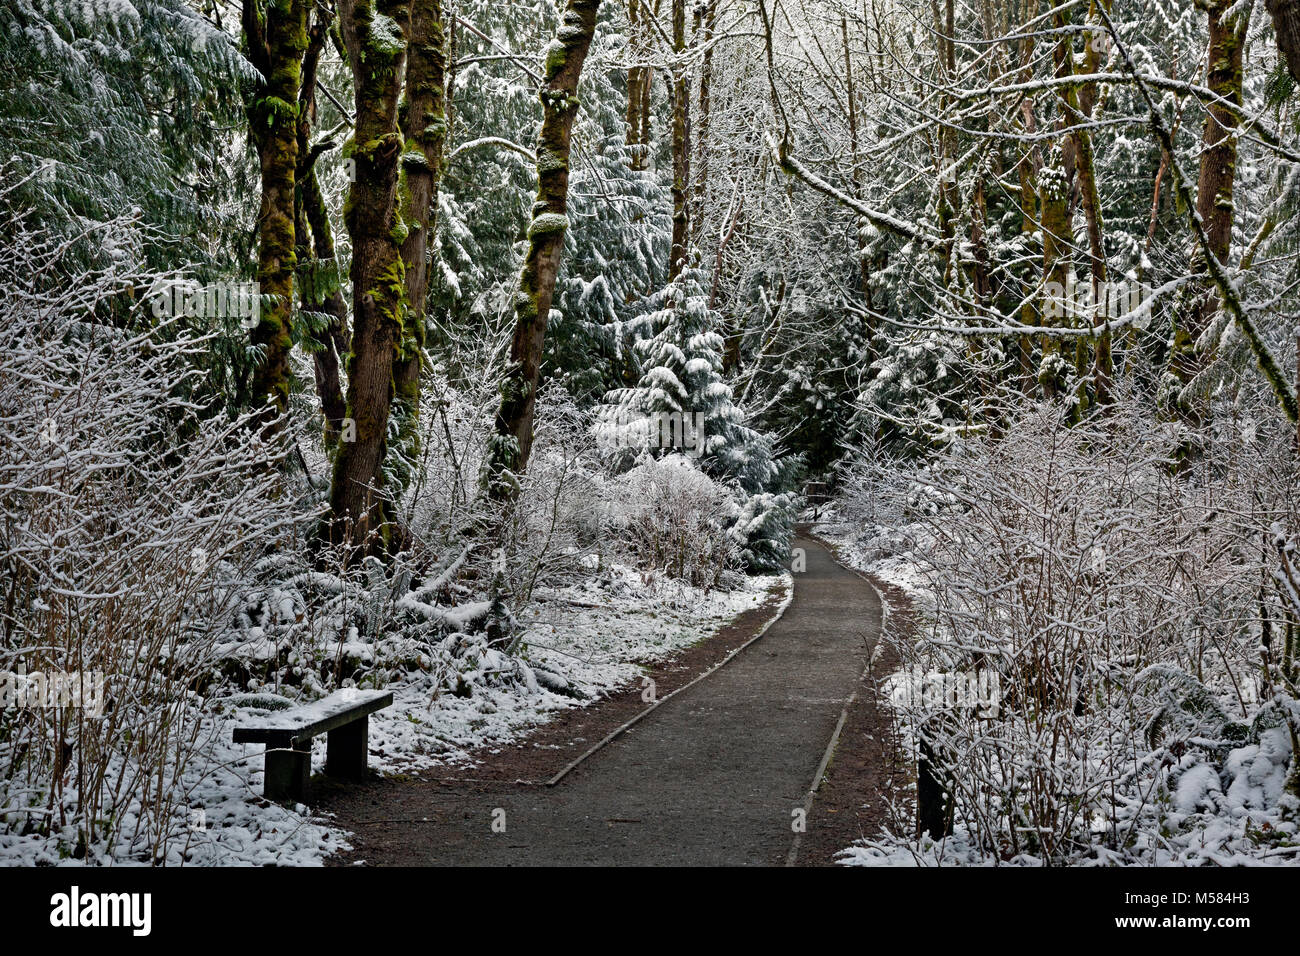 WA13507-00...WASHINGTON - Winter on the Tradition Plateau in the Issaquah Alps. - Stock Image